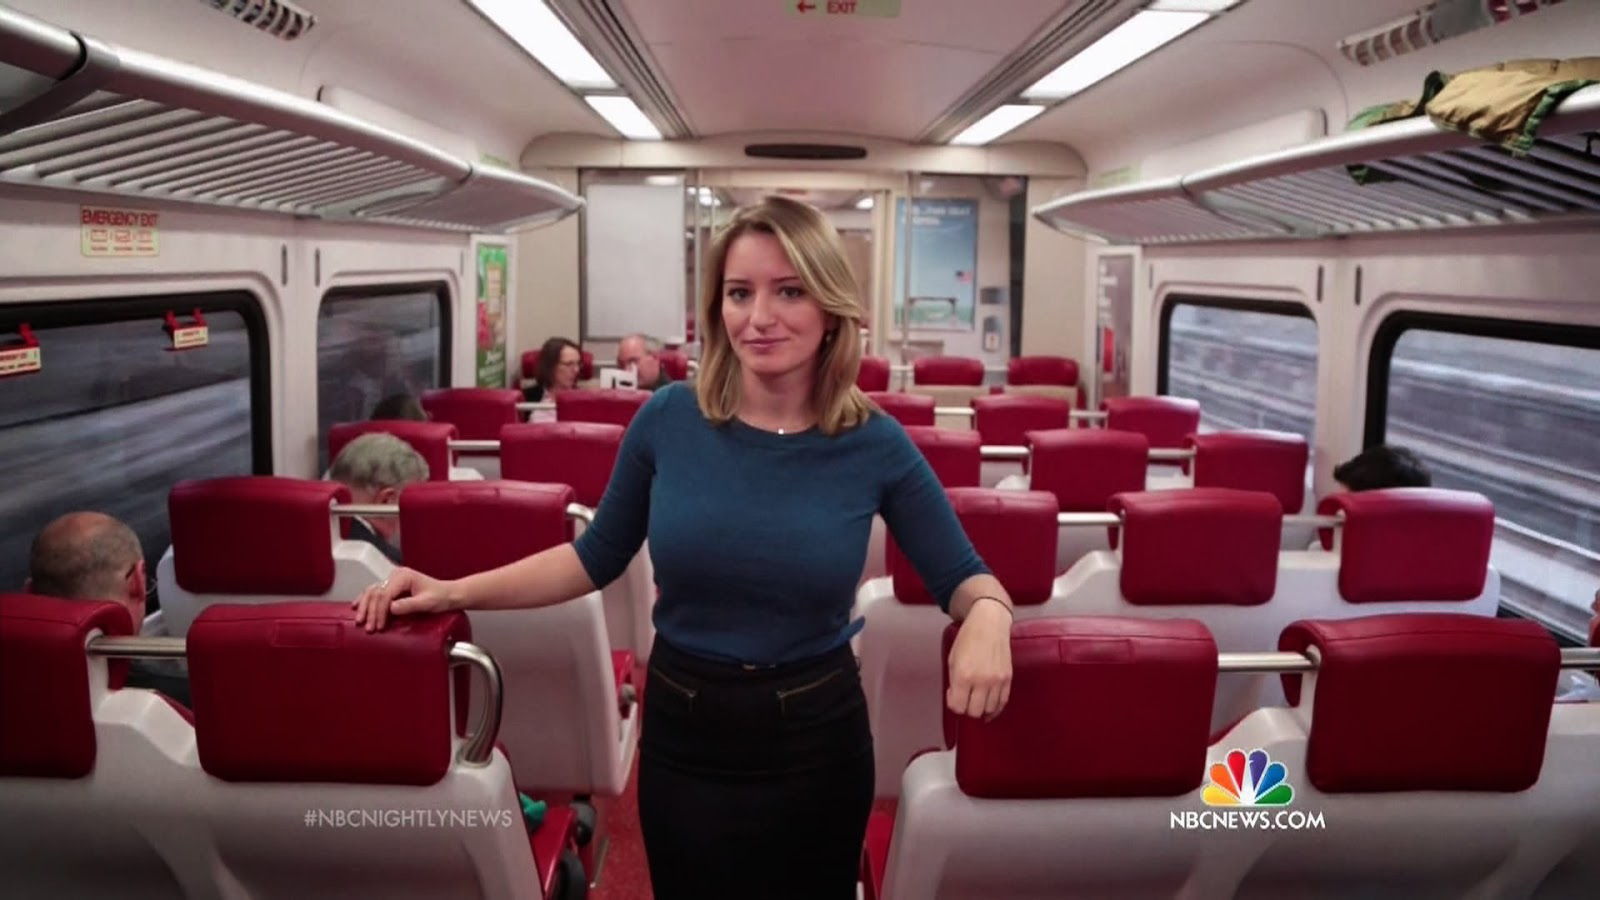 Donald Trump continues to be threatened by NBC's Katy Tur ...